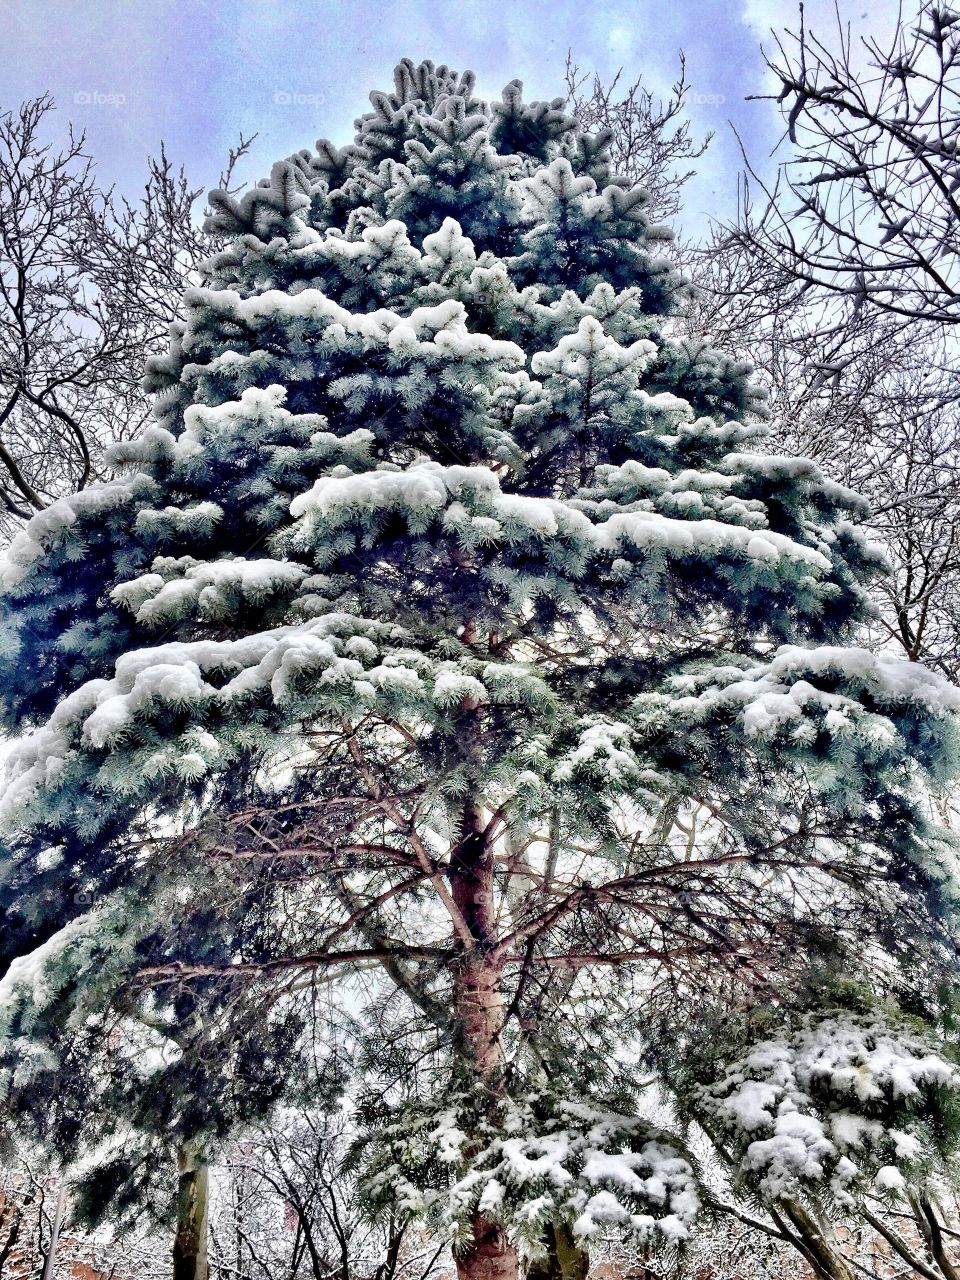 View of snowy tree